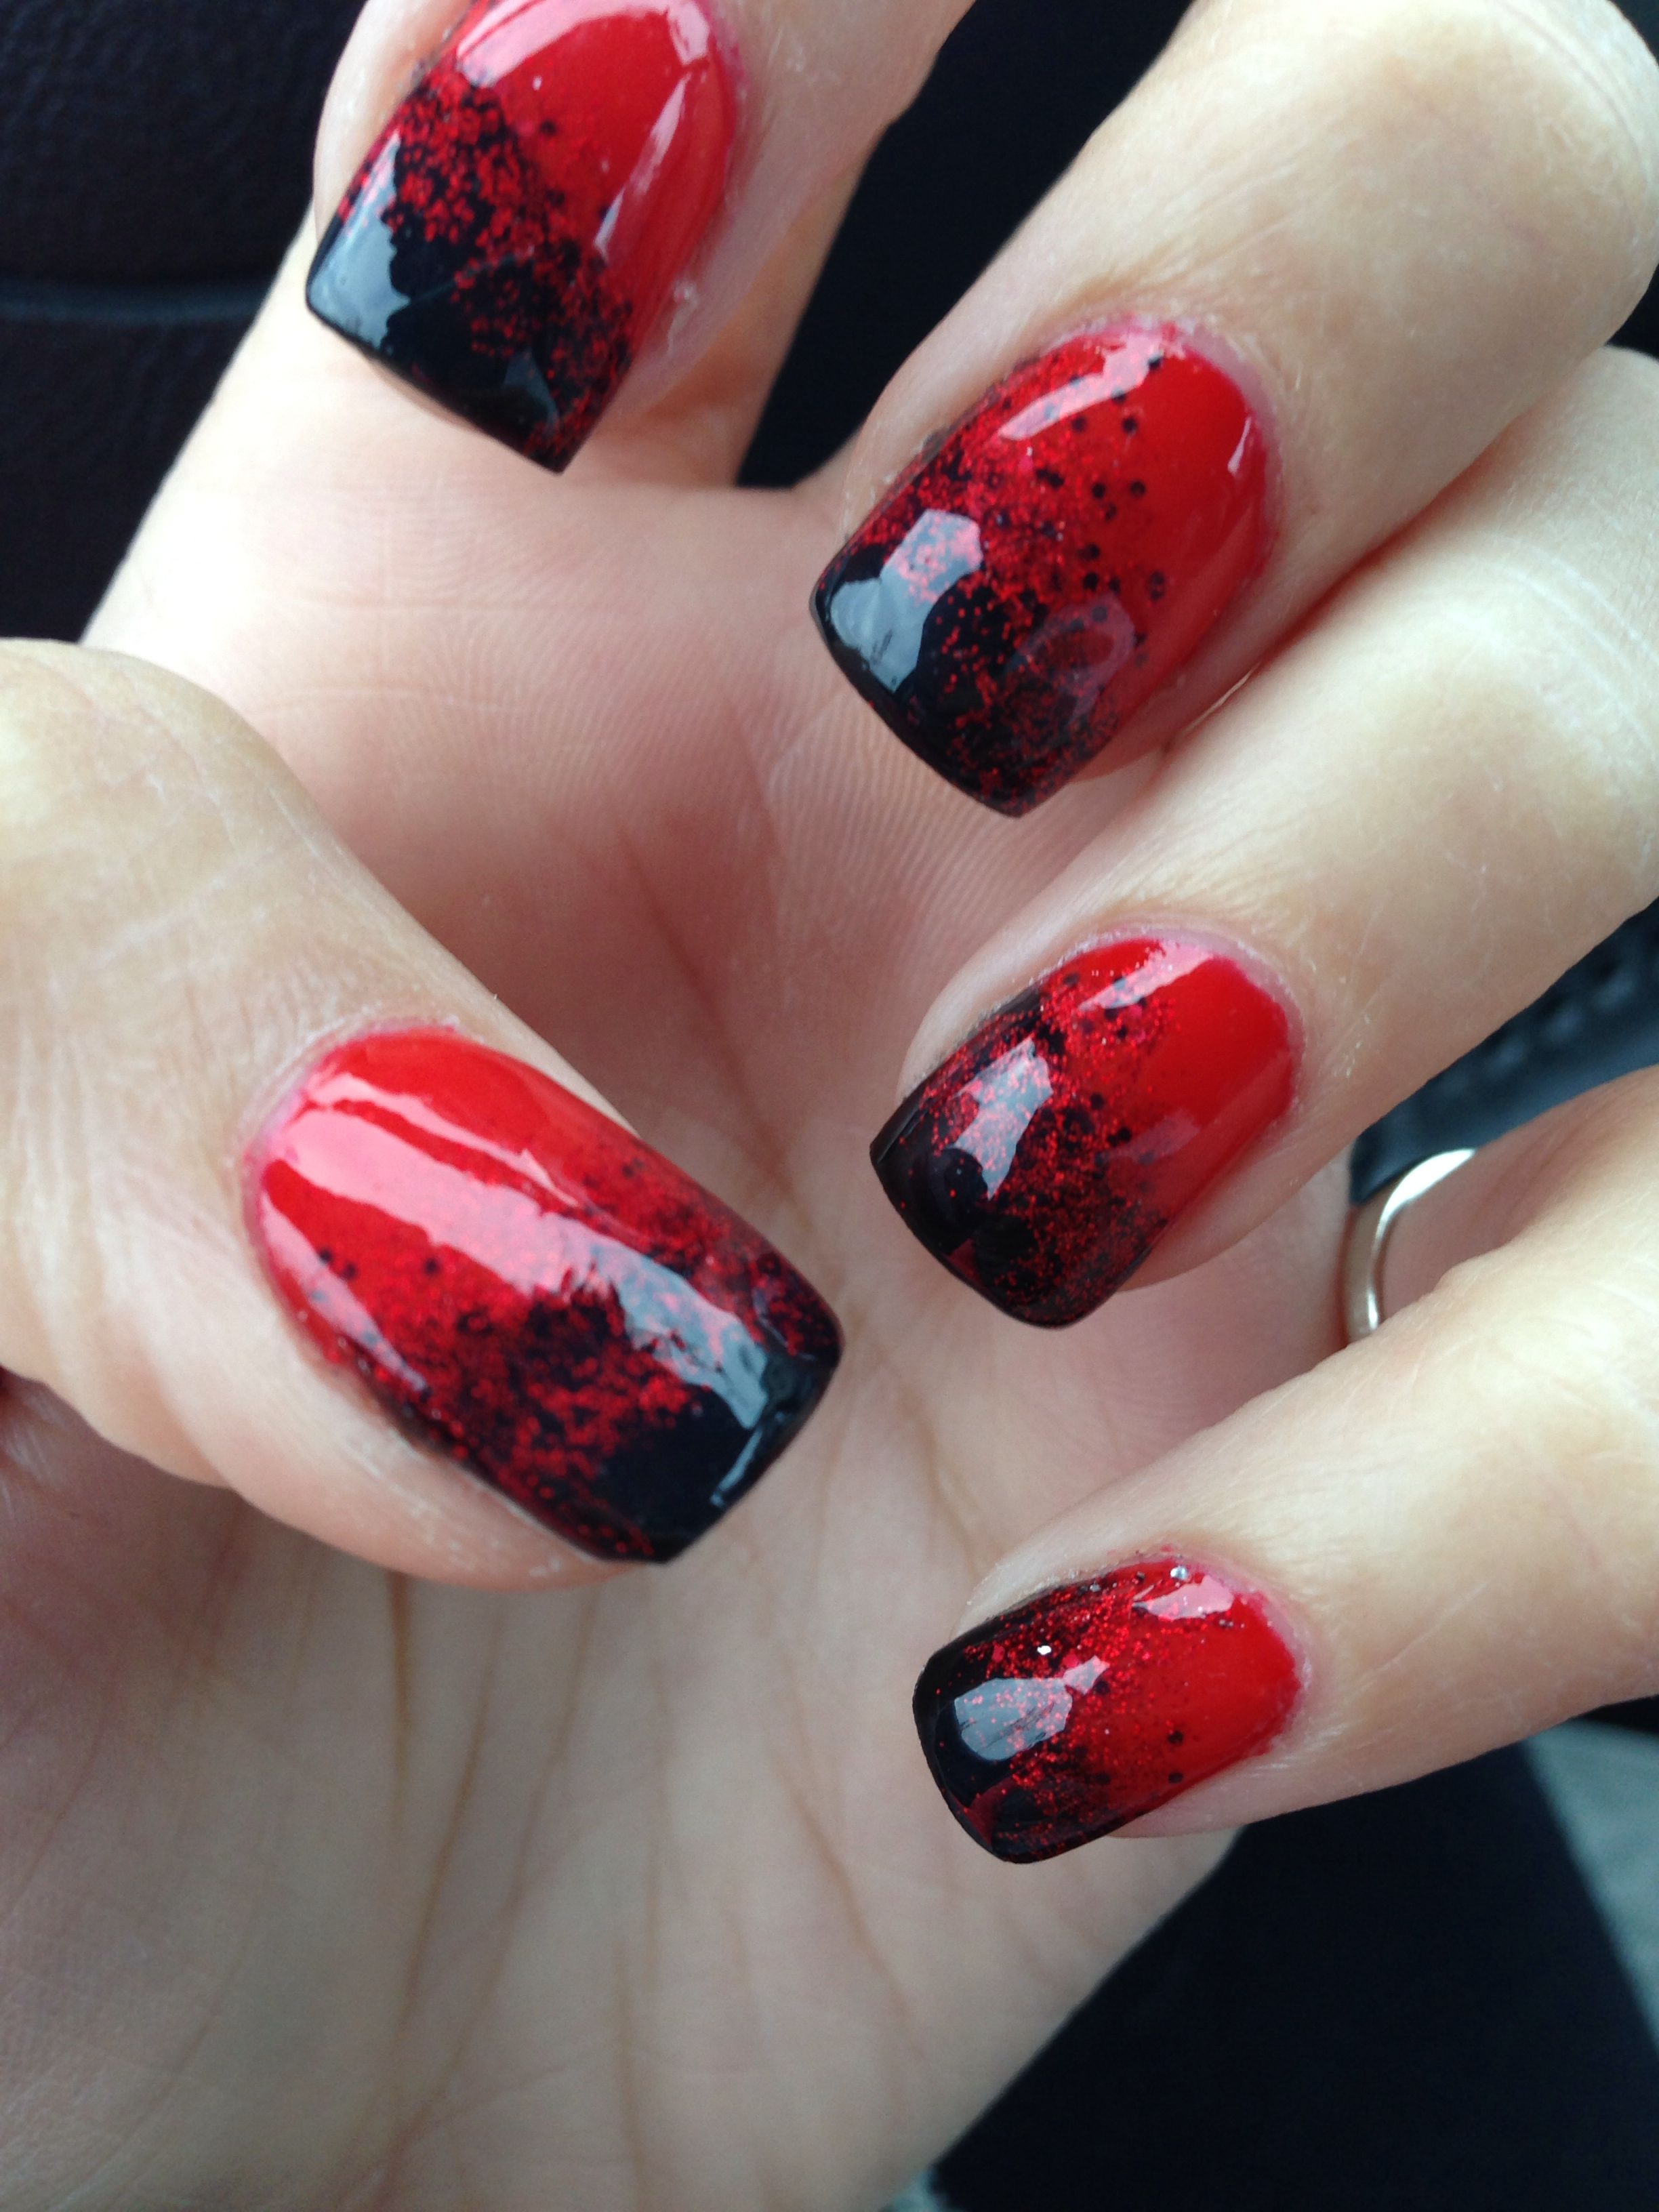 Red and black Halloween gel nails | Red gel nails, Black ...